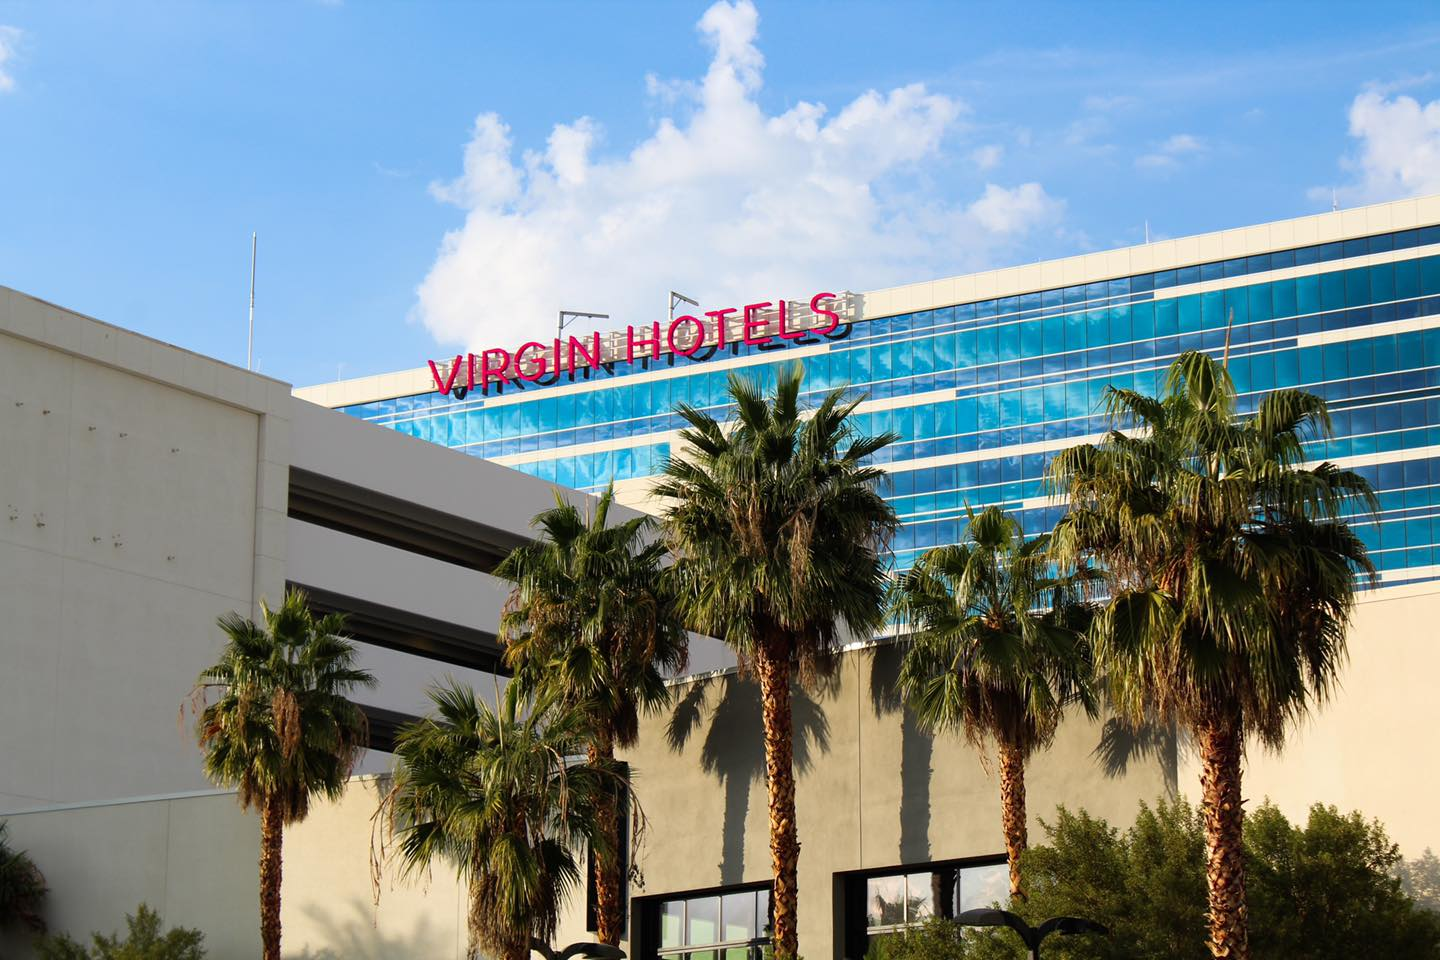 The exterior of a hotel with a red sign on top, blue windows, palm trees, and a parking garage